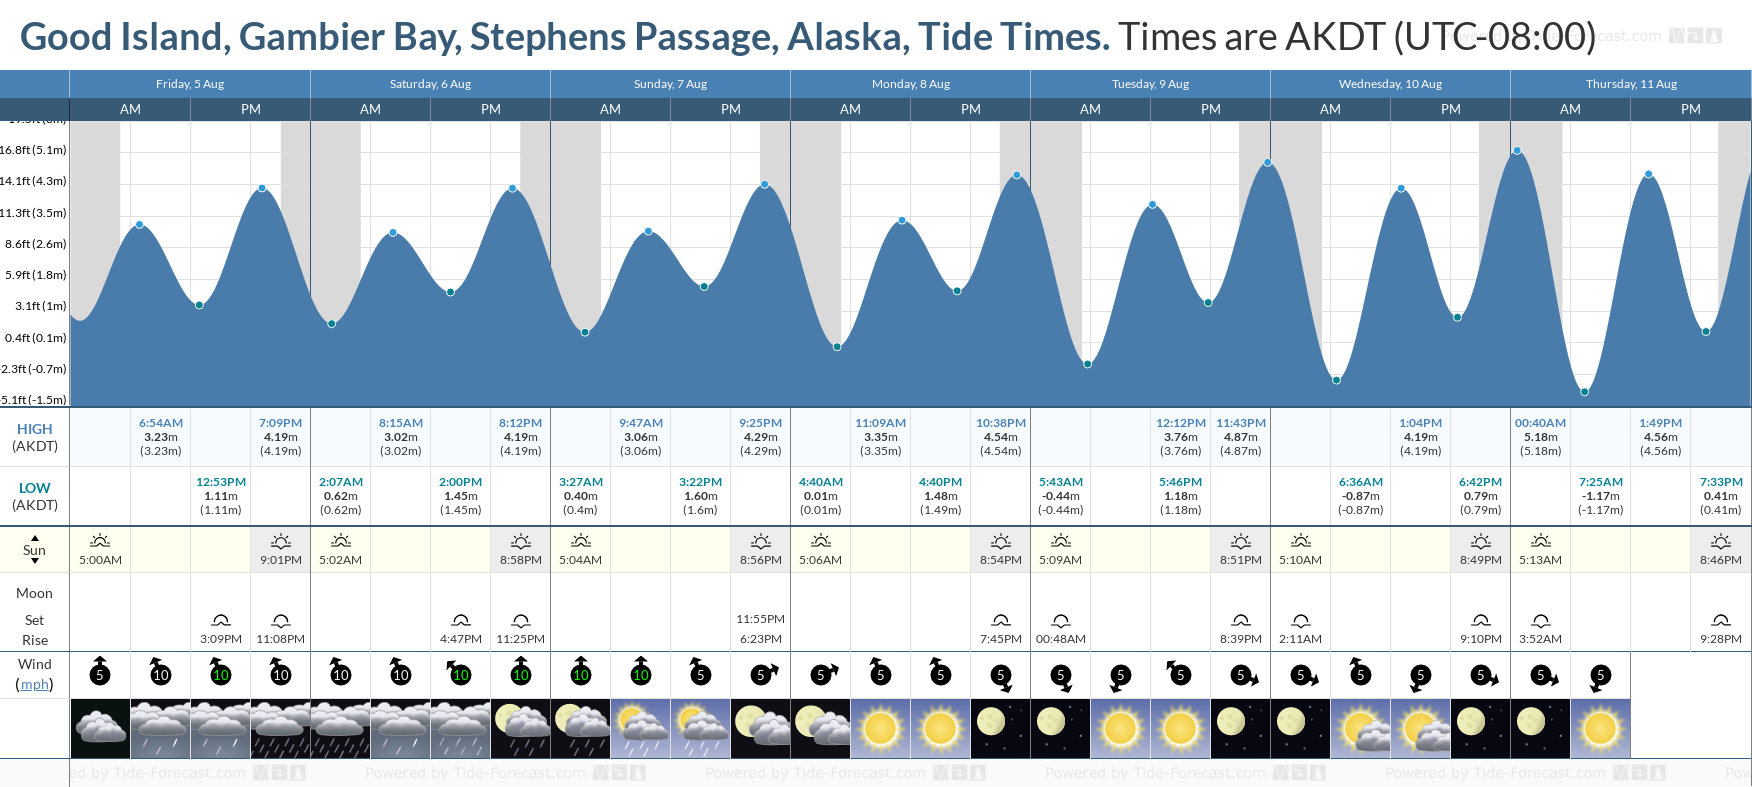 Good Island, Gambier Bay, Stephens Passage, Alaska Tide Chart including high and low tide tide times for the next 7 days